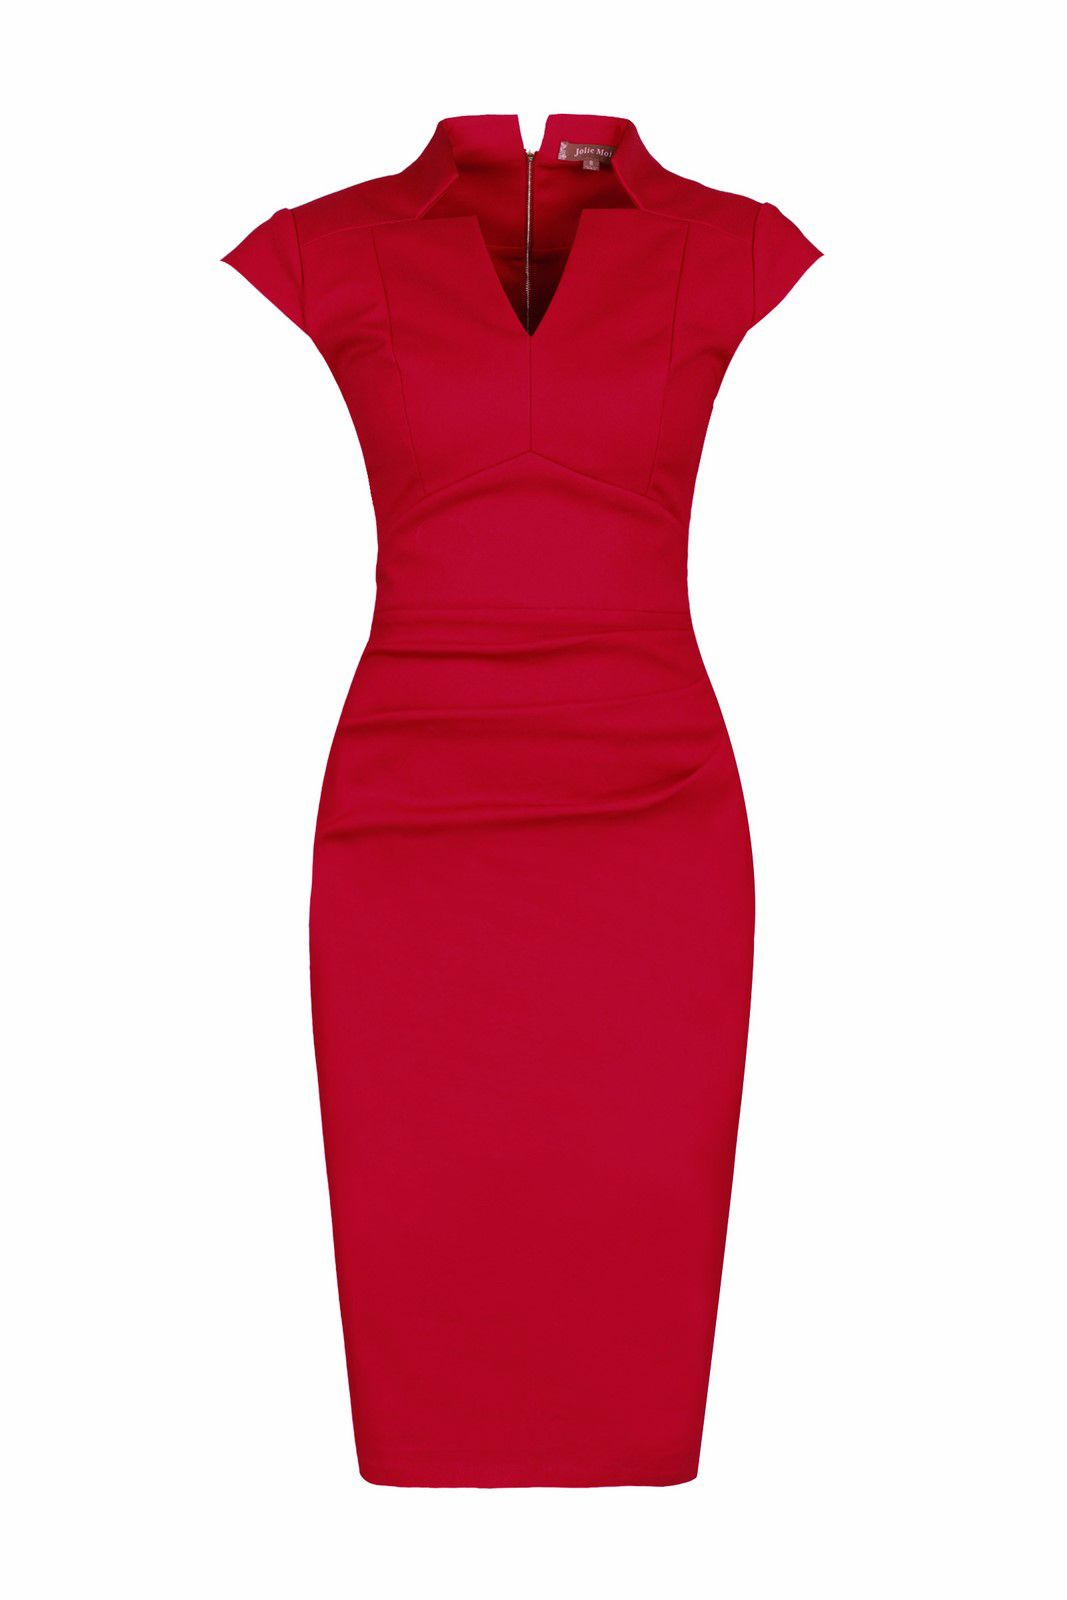 Jolie Moi High Collar V Neck Ruched Dress, Red